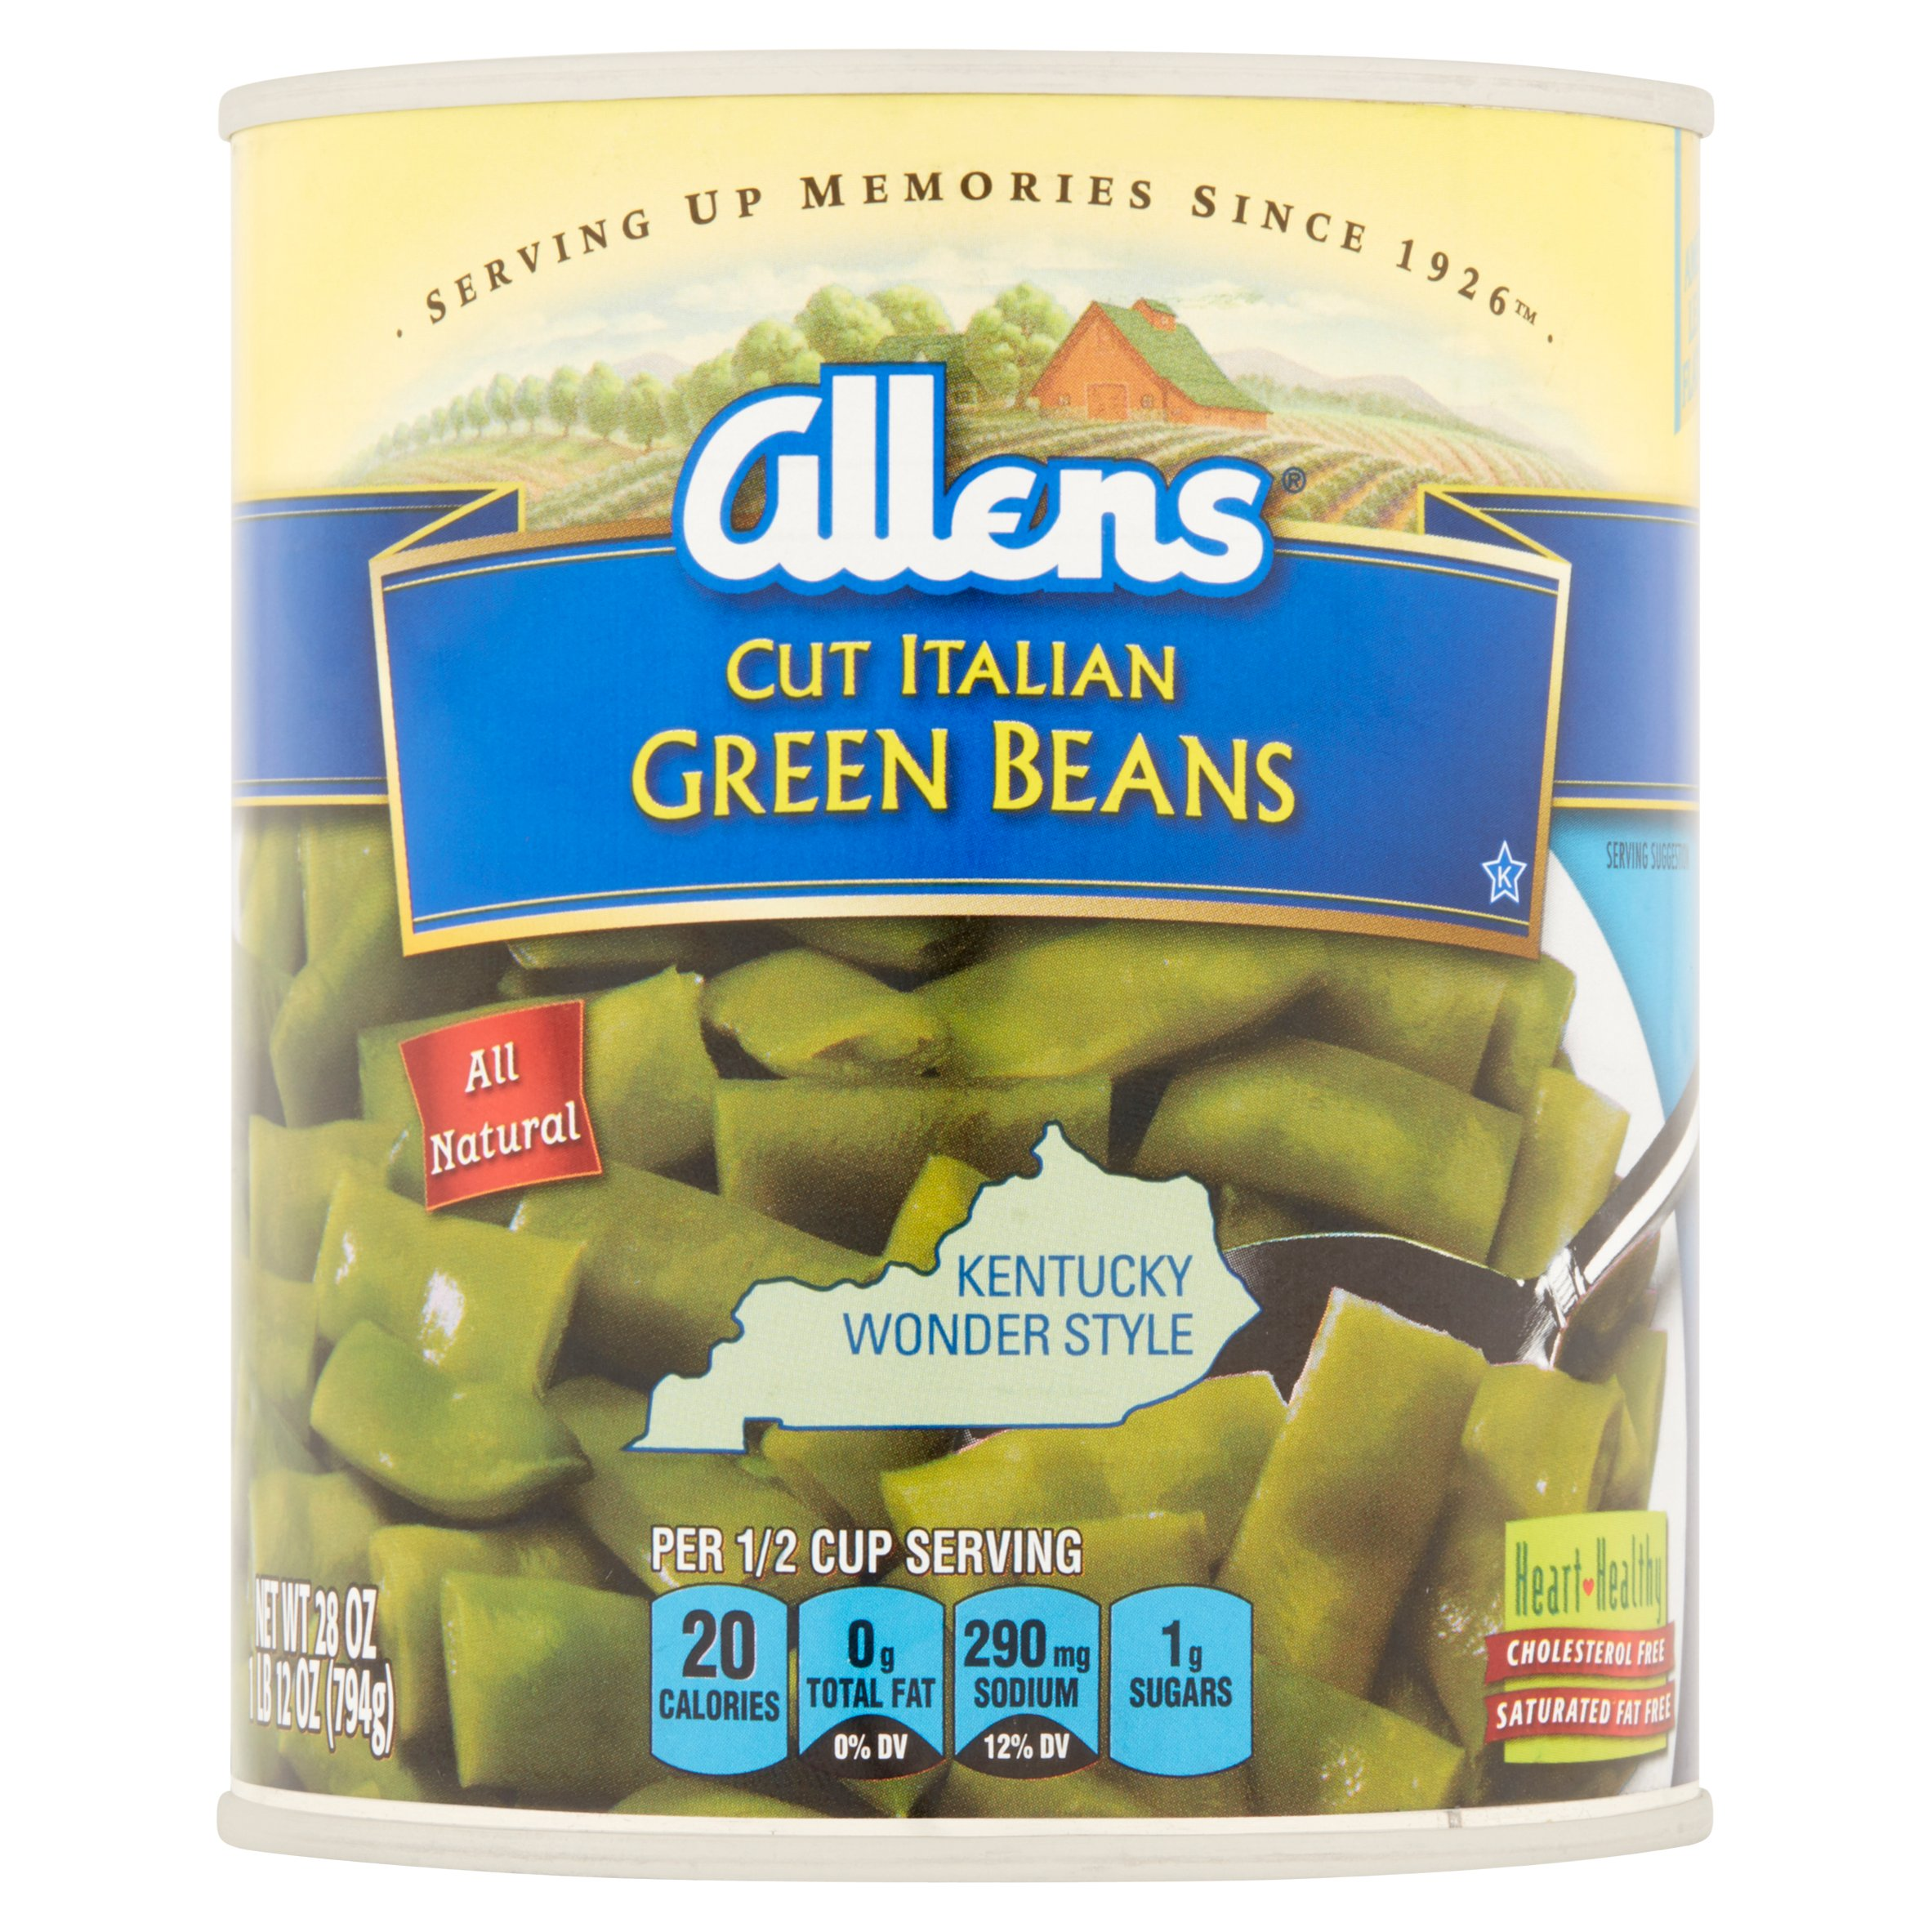 Allens Cut Italian Green Beans, 28 Oz